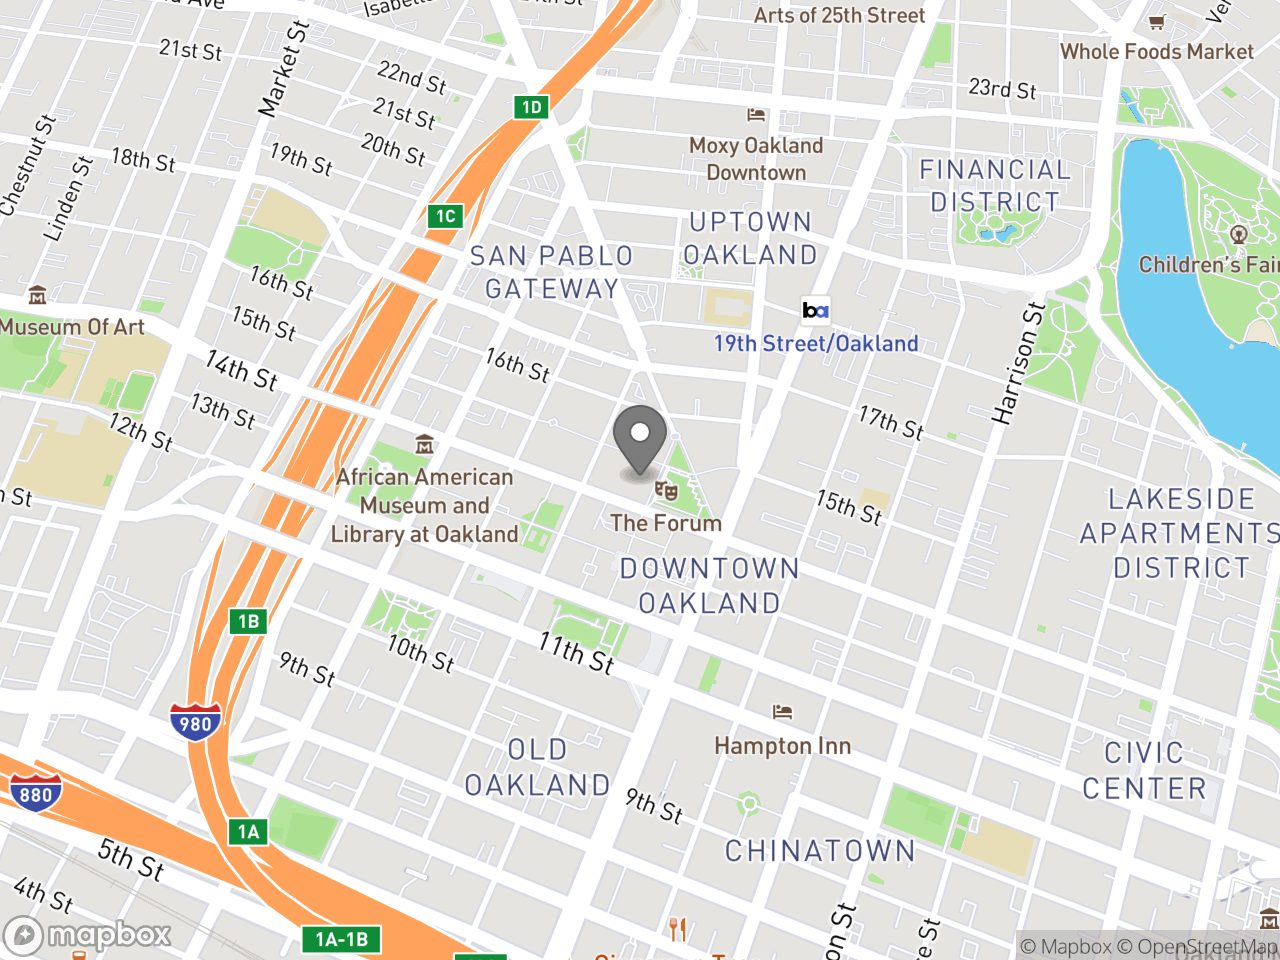 Map location for May 22, 2019 Design Review Committee, located at 1 Frank H Ogawa Plaza in Oakland, CA 94612